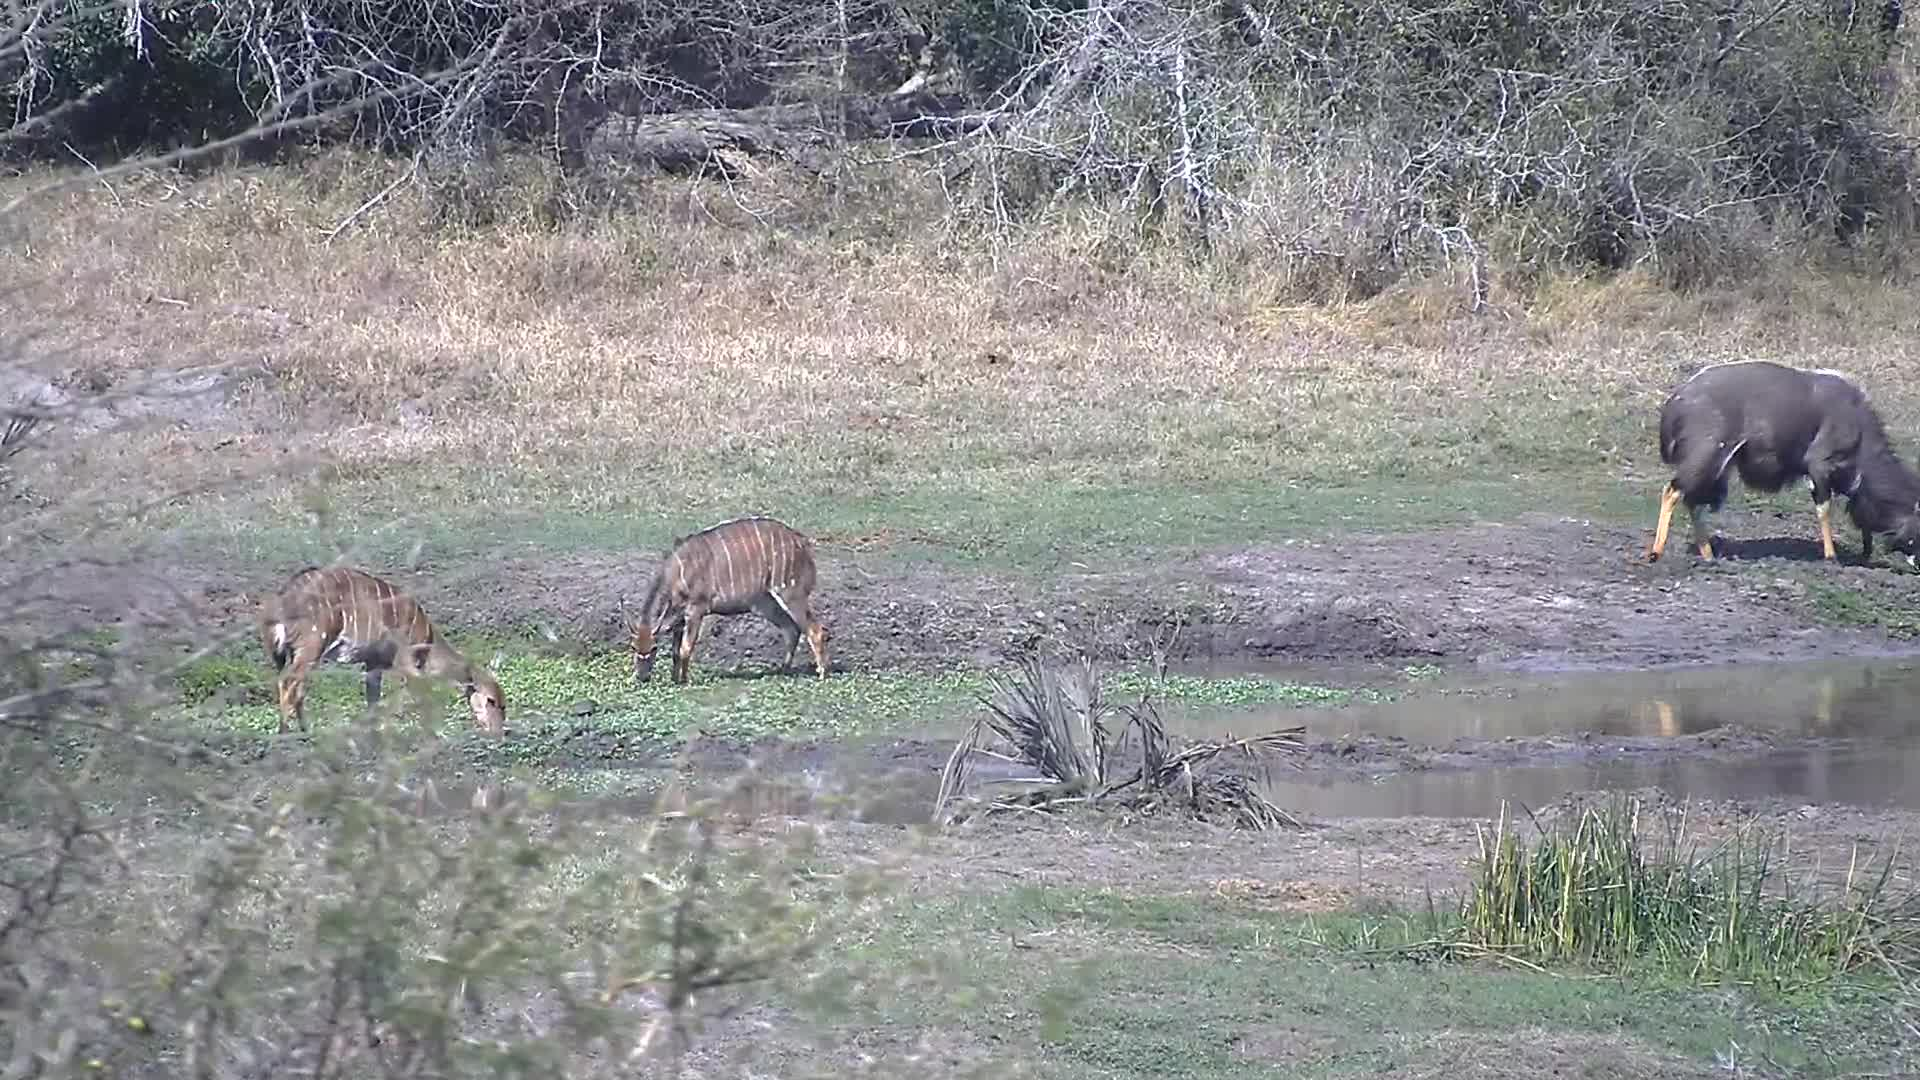 VIDEO:  Male Nyala digging with his head in the mud